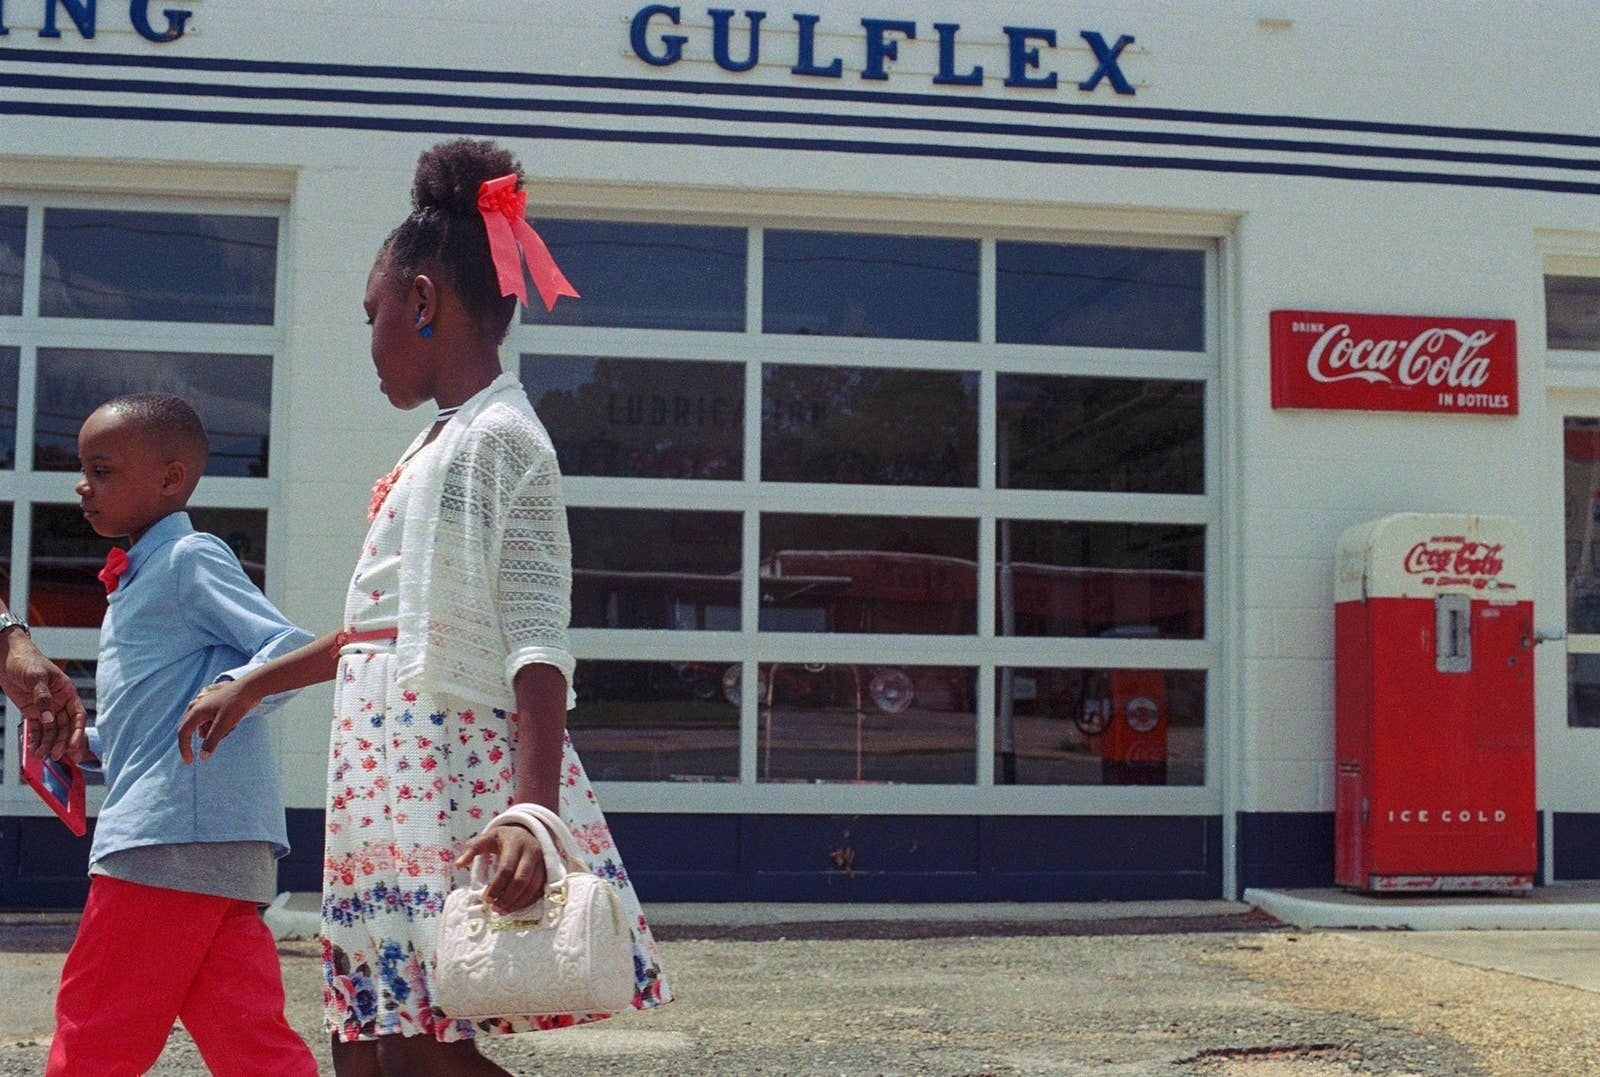 Two young children in front of a gas station